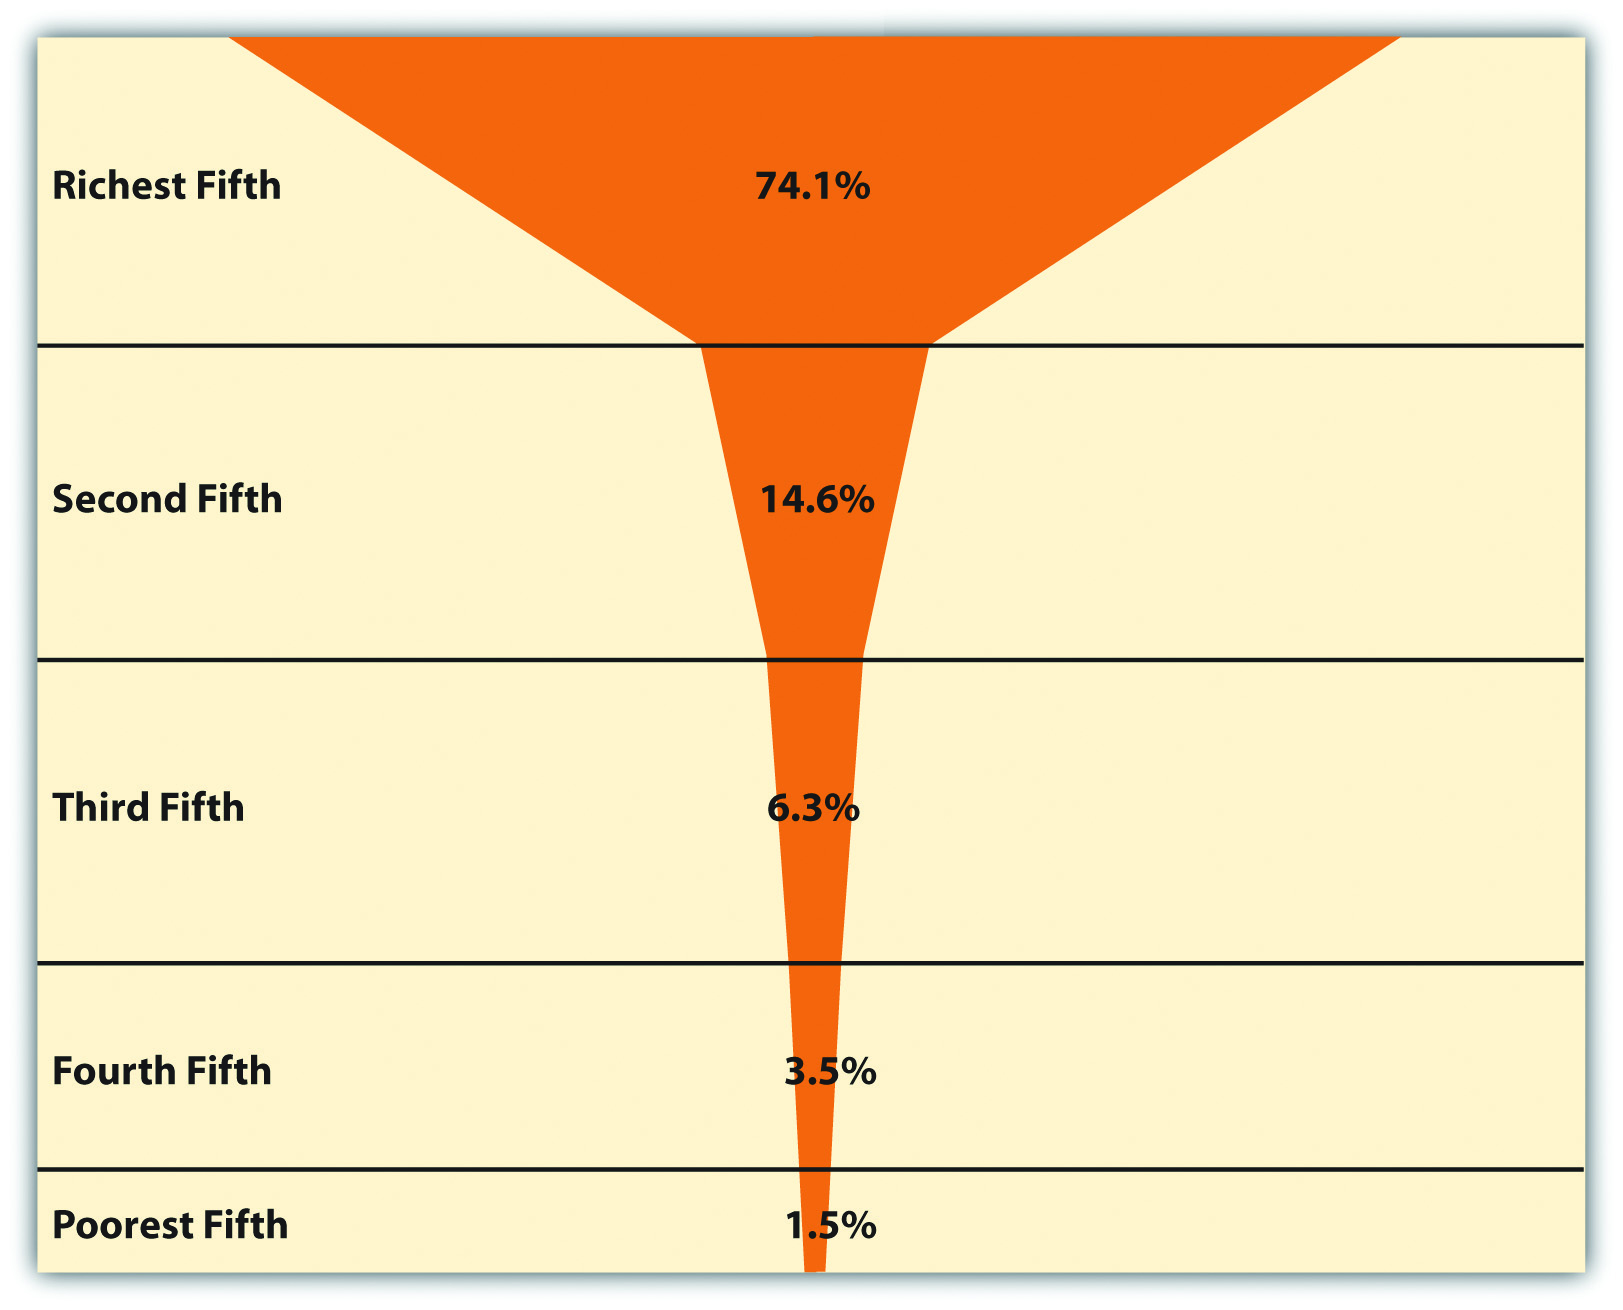 Global Income Distribution (Percentage of World Income Held by Each Fifth of World Population